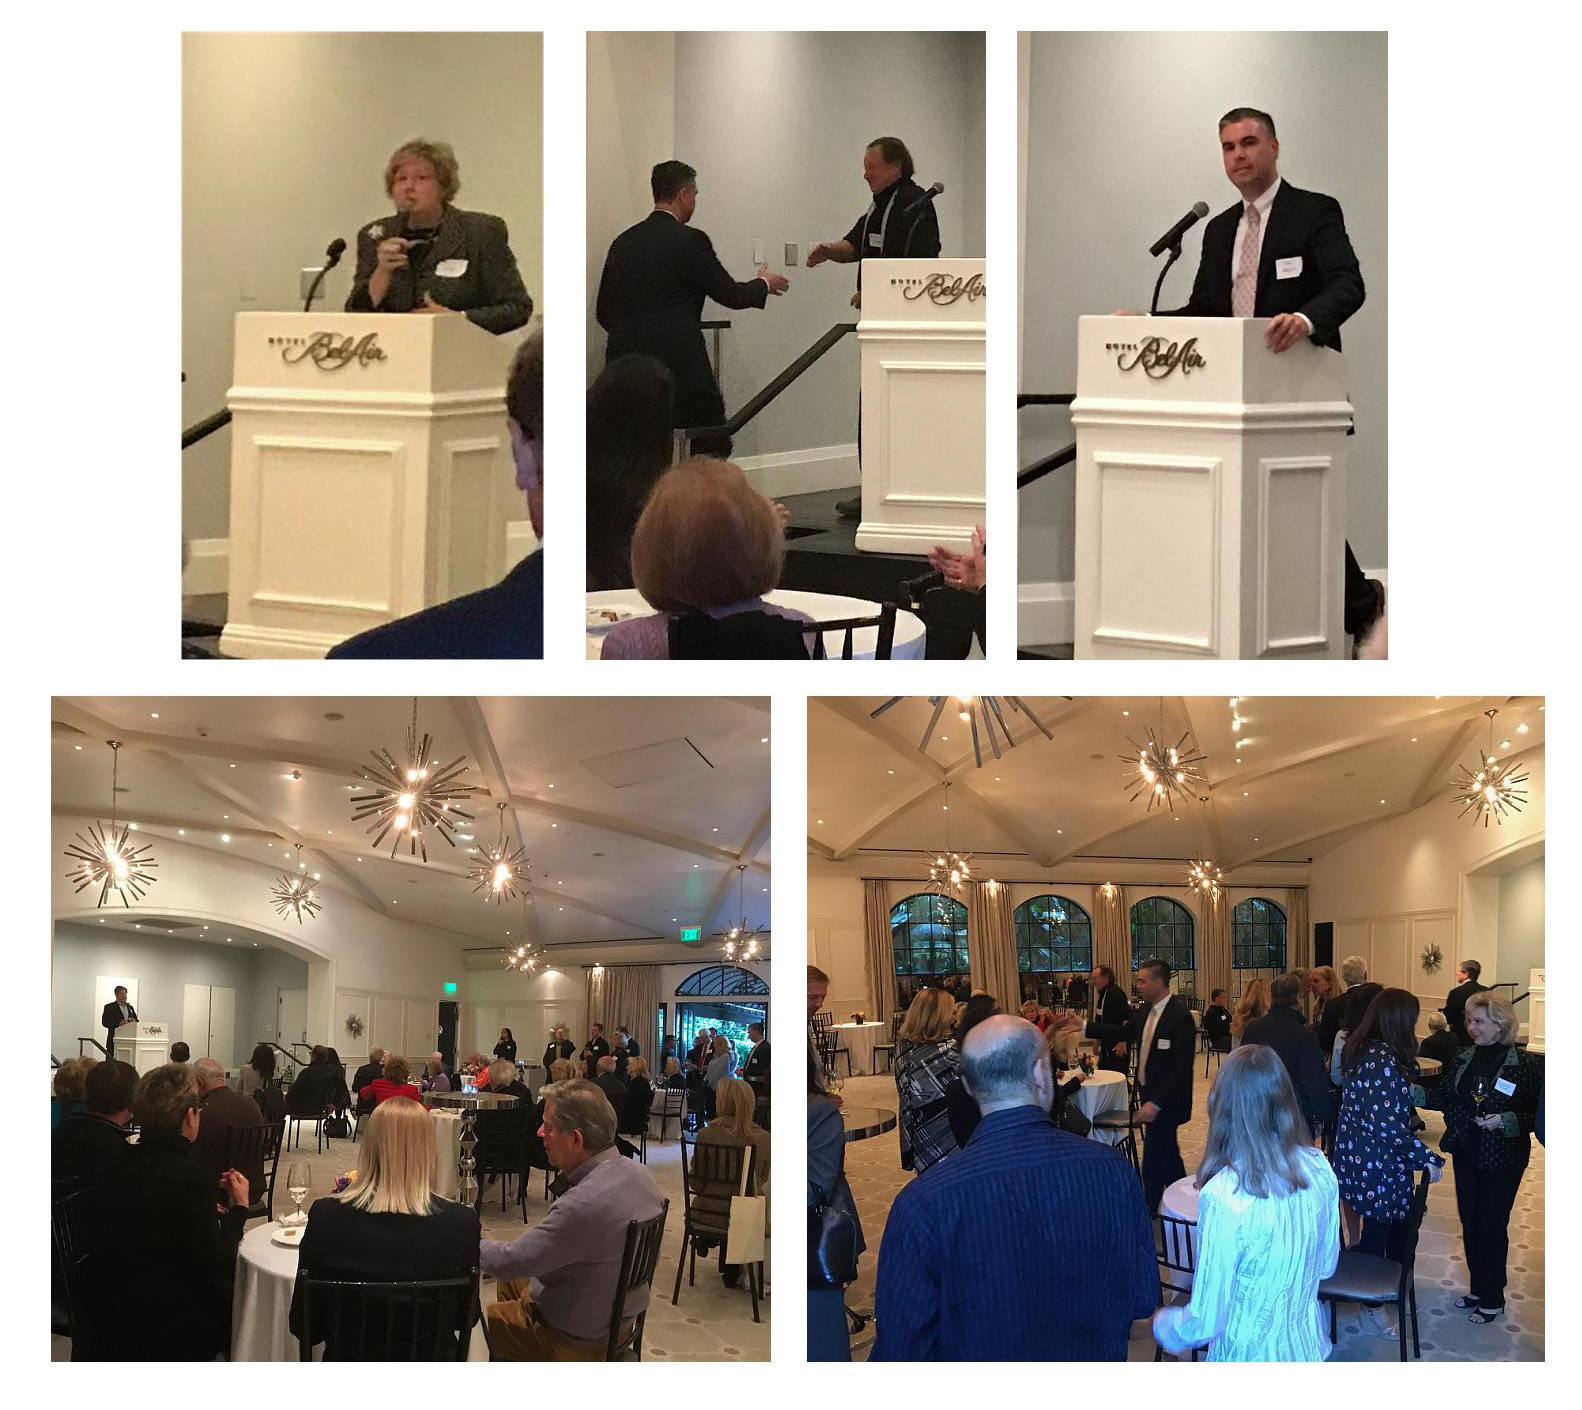 BAA Chairperson, Marcia Hobbs, and dan love, BAA President, addressed the membership.  fred rosen, President and ceo of bel air homeowners alliance welcomed shawn bayliss to the podium